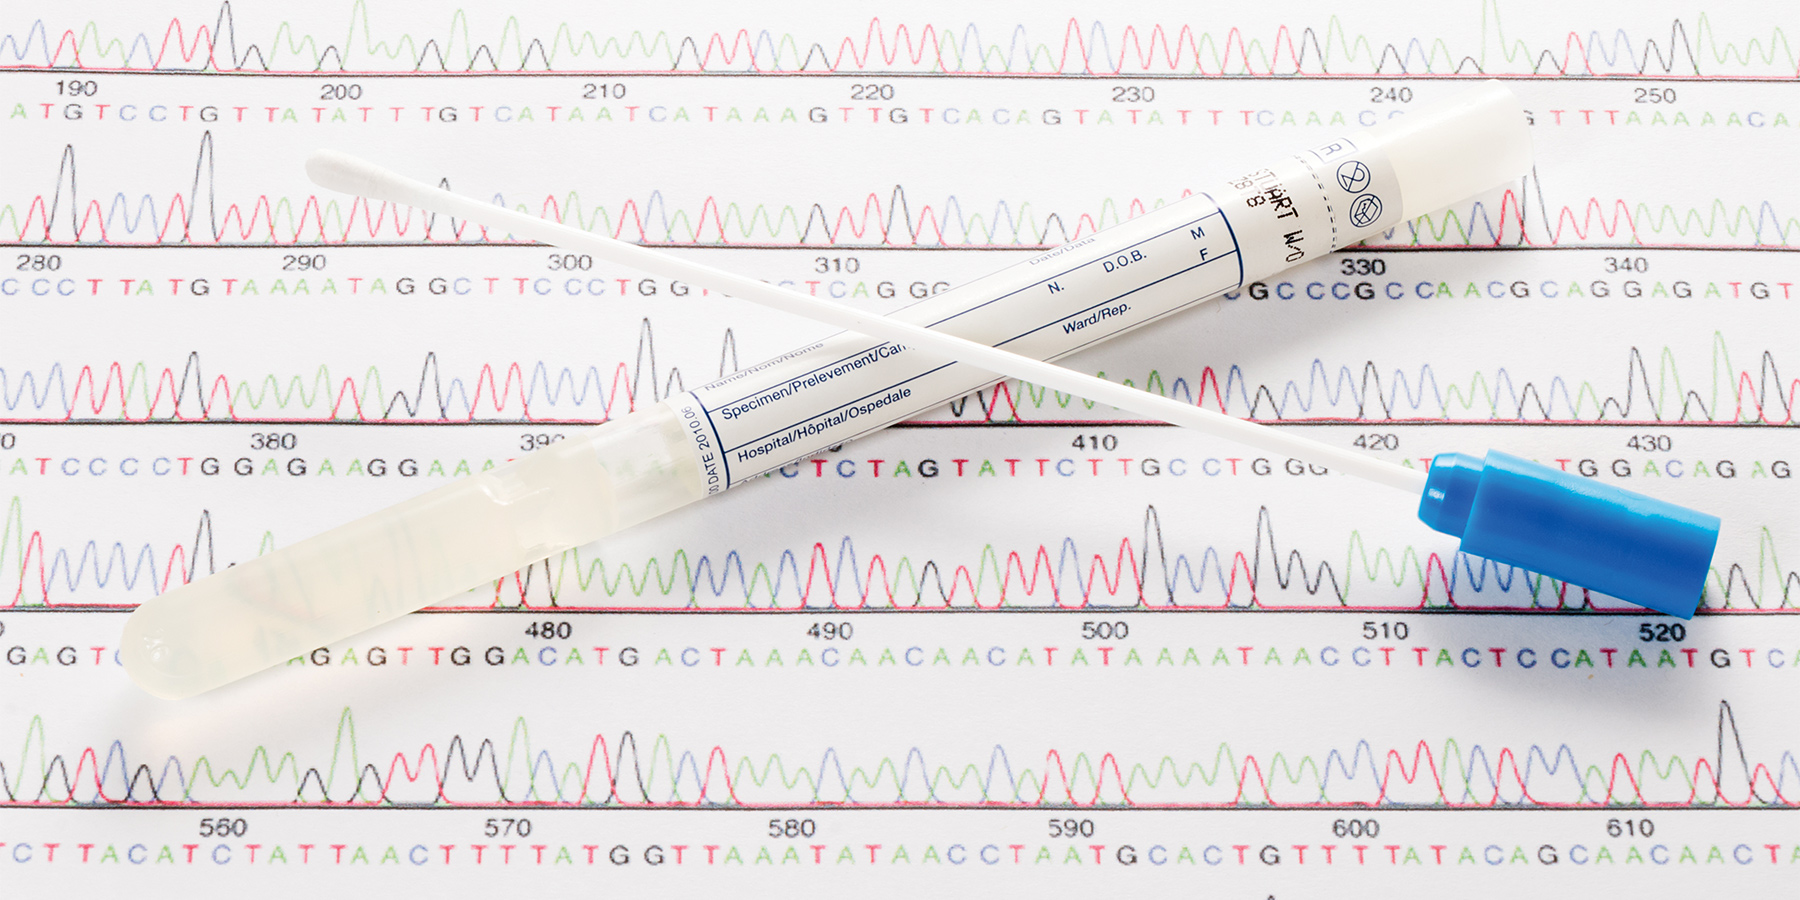 Do Cancer Genetic Testing Criteria Need an Overhaul?